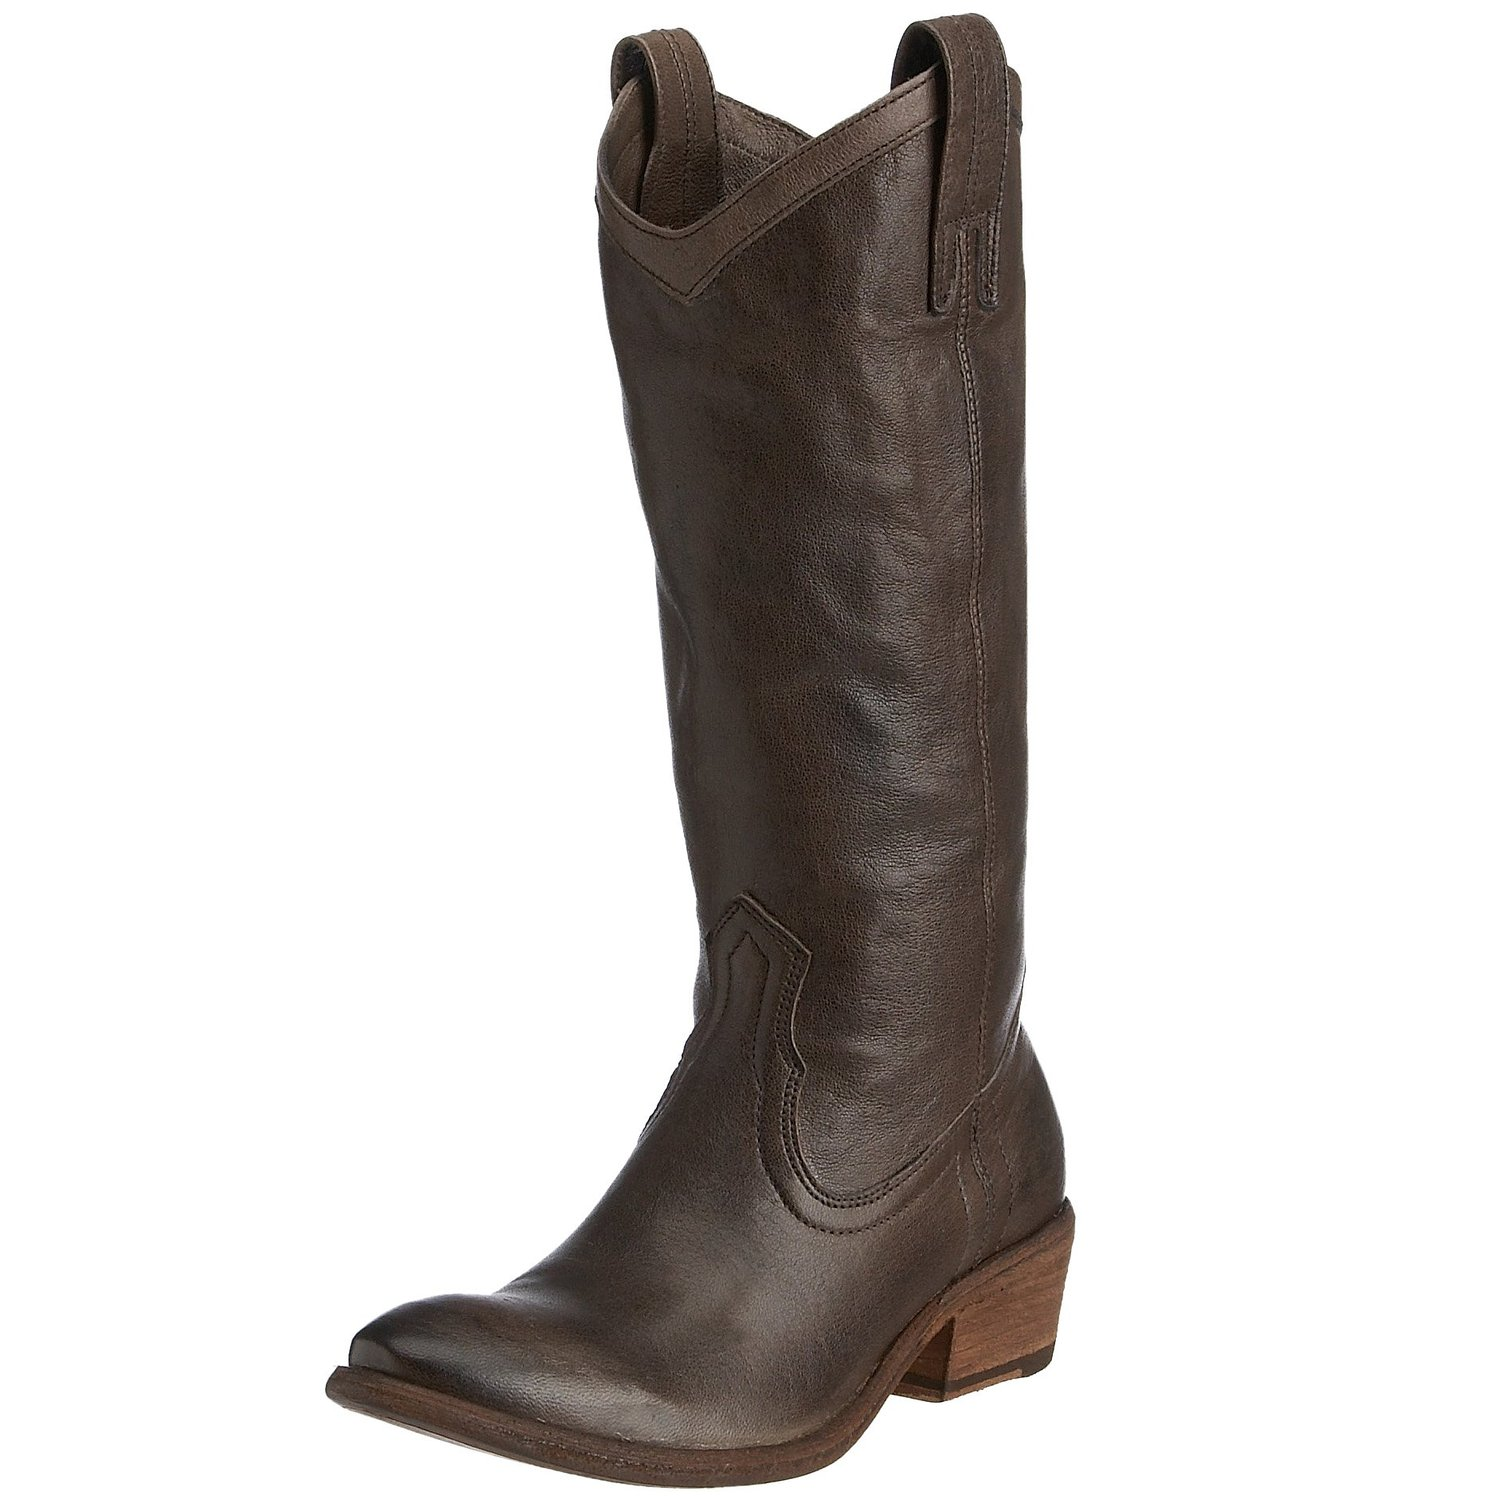 Discount Frye Boots Sale: Save Up to 60% Off! Shop interactivebest.ml's huge selection of Cheap Frye Boots - Over 20 styles available. FREE Shipping & Exchanges, and a % price guarantee! Free Shipping. No Minimum. Get exclusive deals, sneak peeks & more! Subscribe. Stay connected.